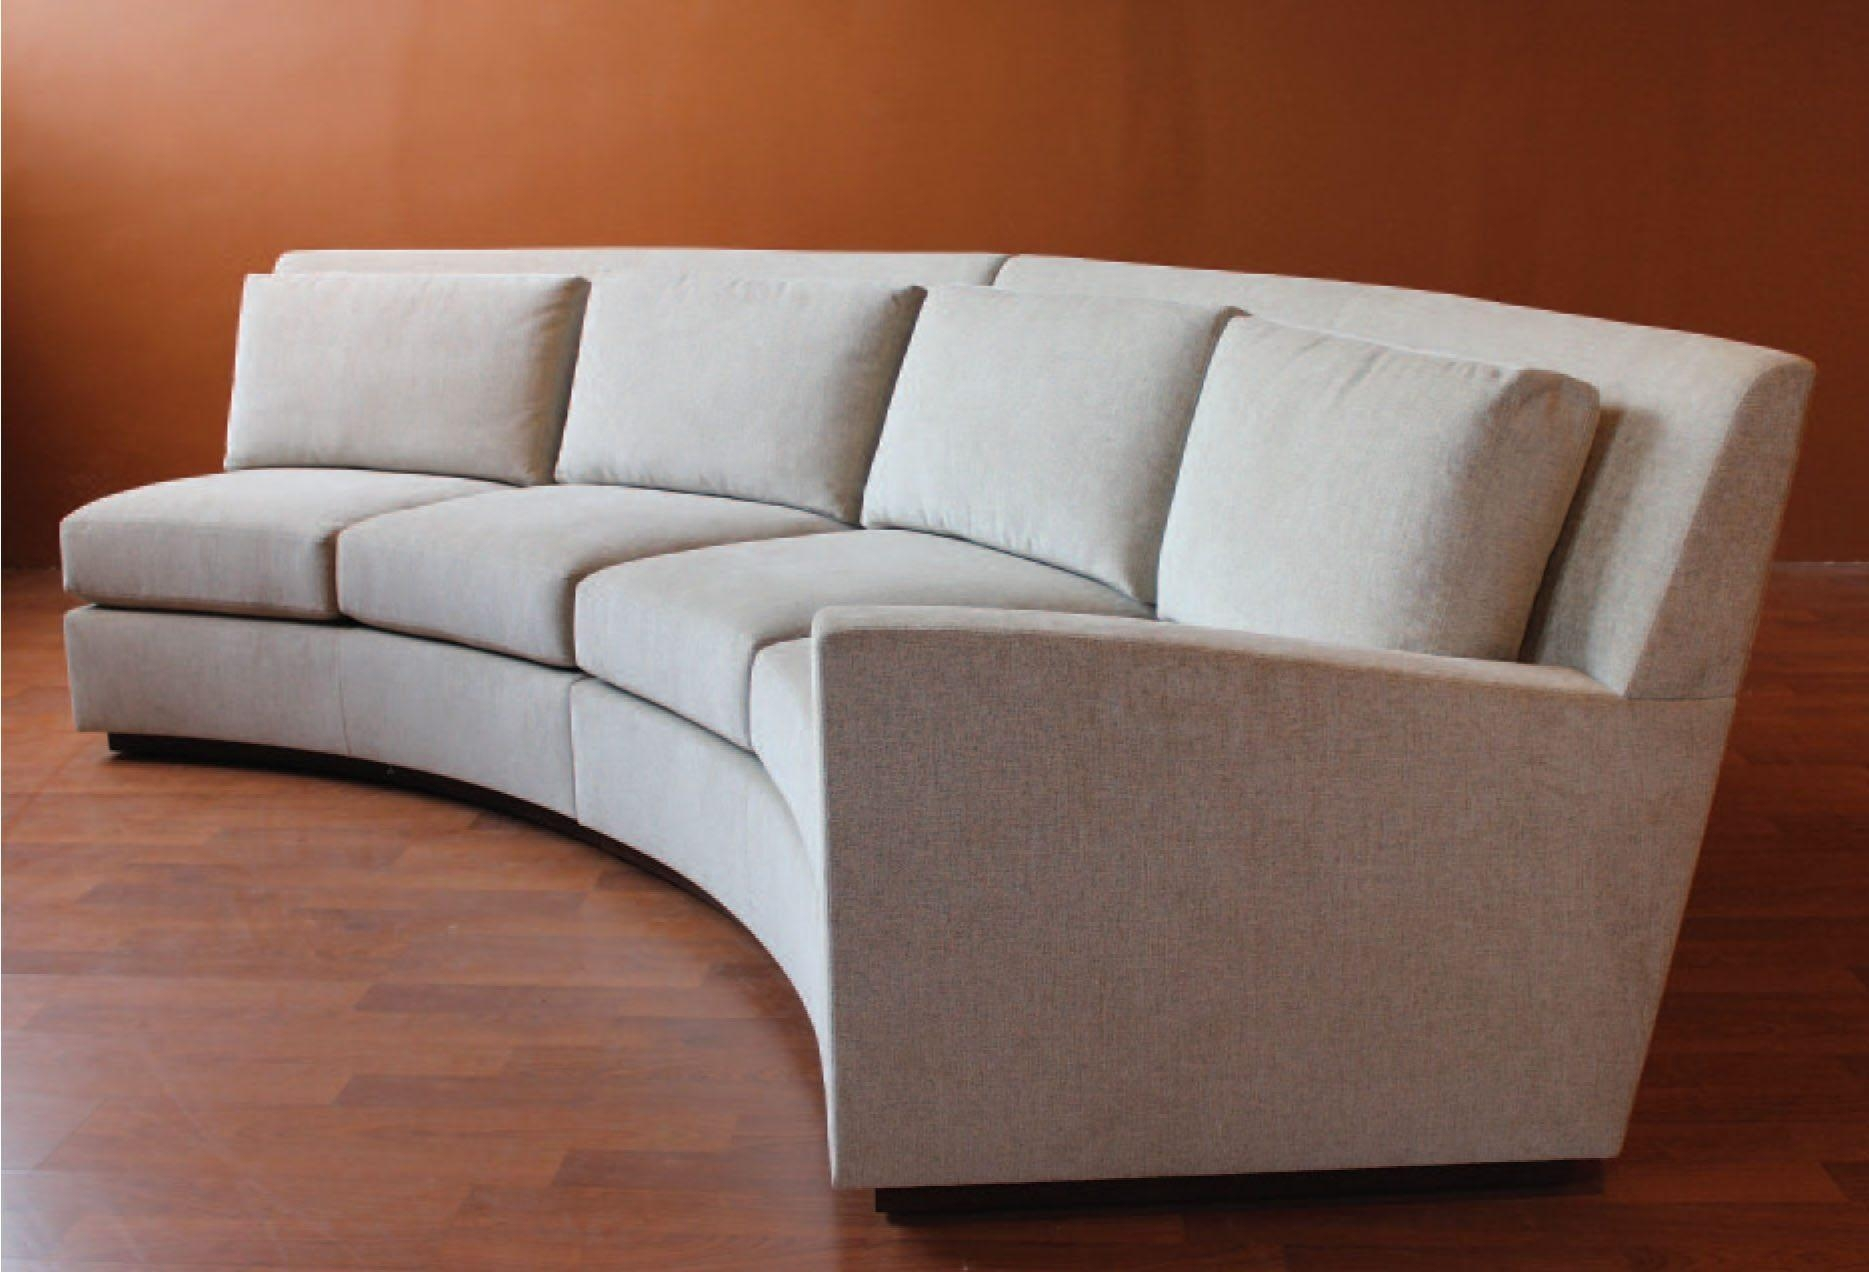 Furniture: Couch Sectional | Sofa With Chaise Lounge | Round Couches In Round Sectional Sofa Bed (Image 8 of 20)